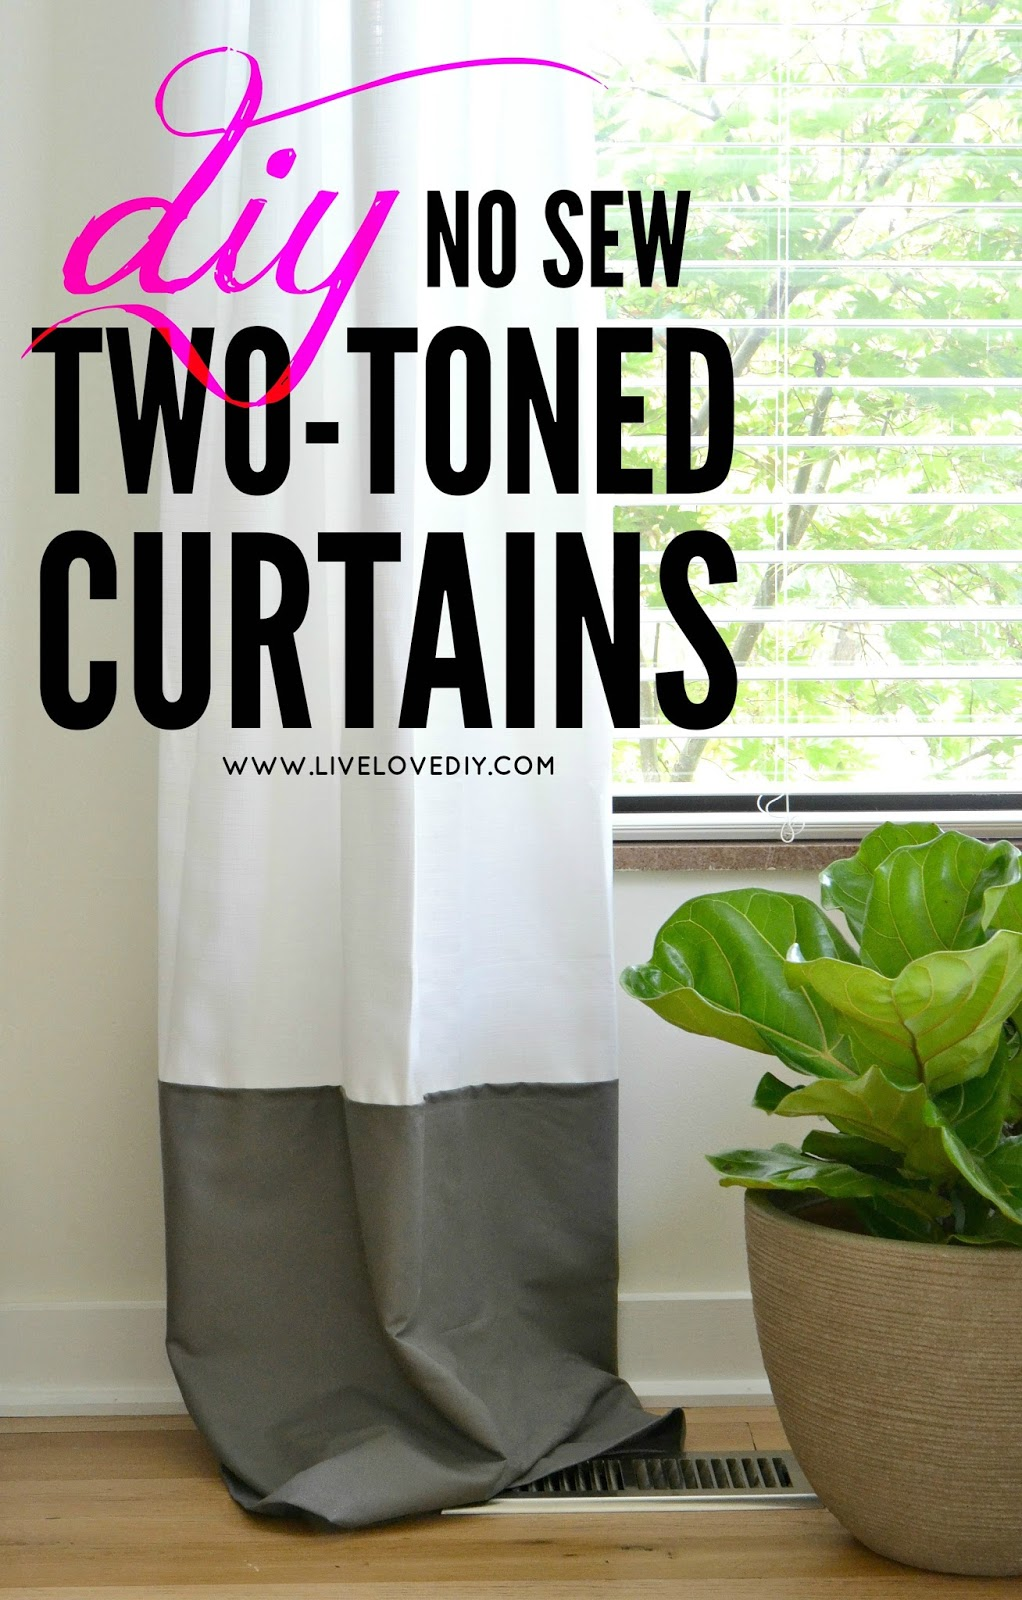 Diy No Sew Two Toned Curtains Livelovediy Bloglovin